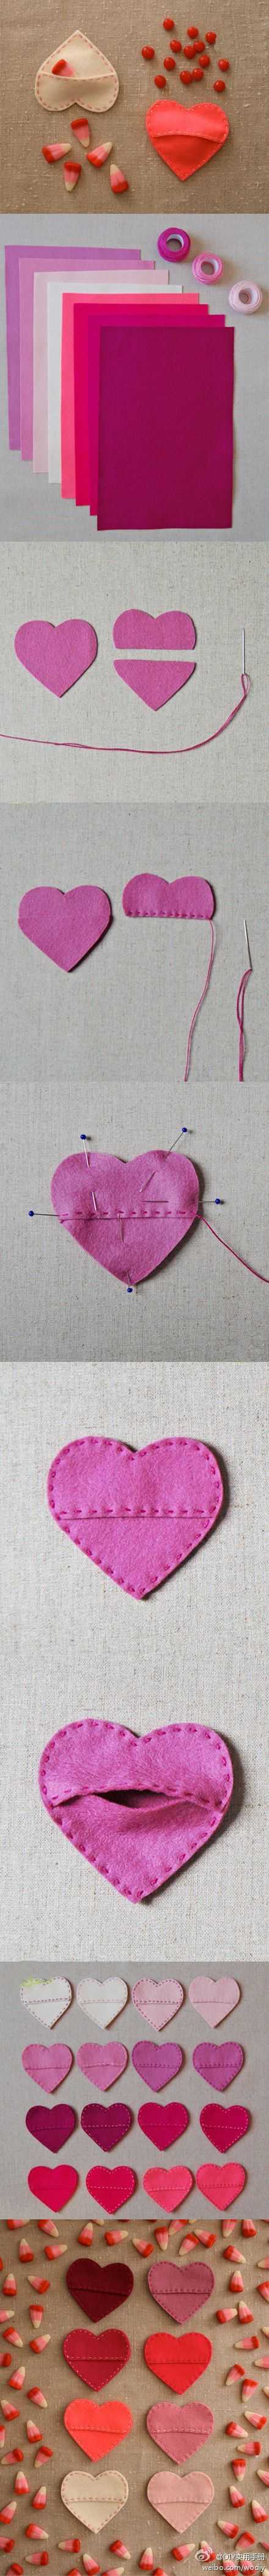 FELT HEART... great little goodie holder!